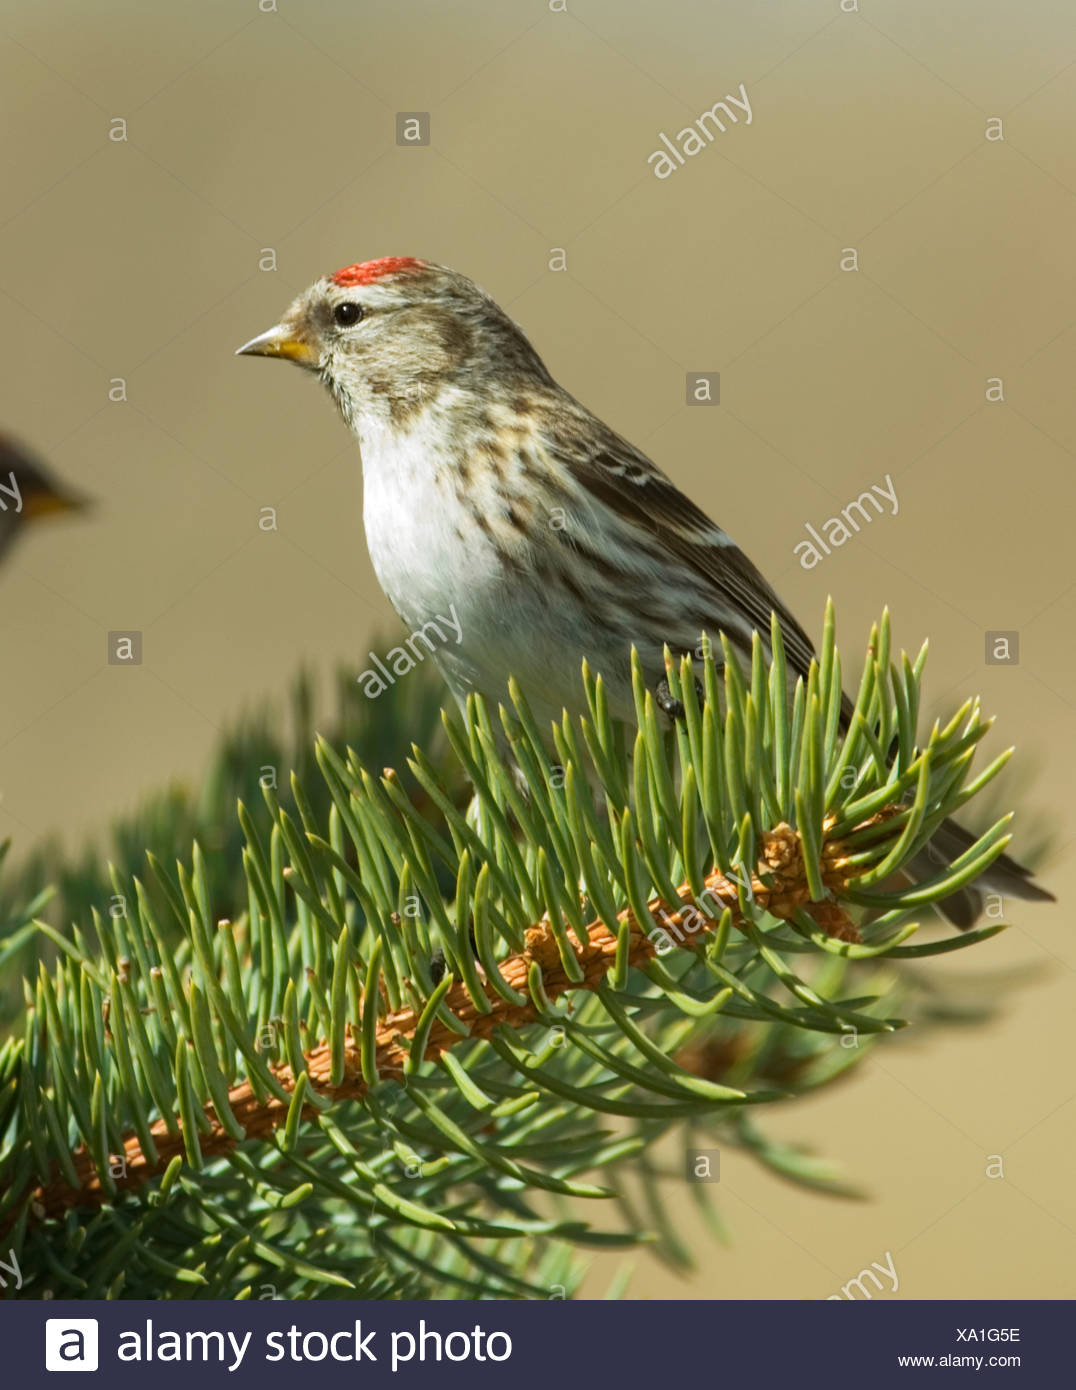 Common Redpole (Carduelis flammen) Female. A small Finch of northern forests and tundra which often forms flocks with other finc - Stock Image